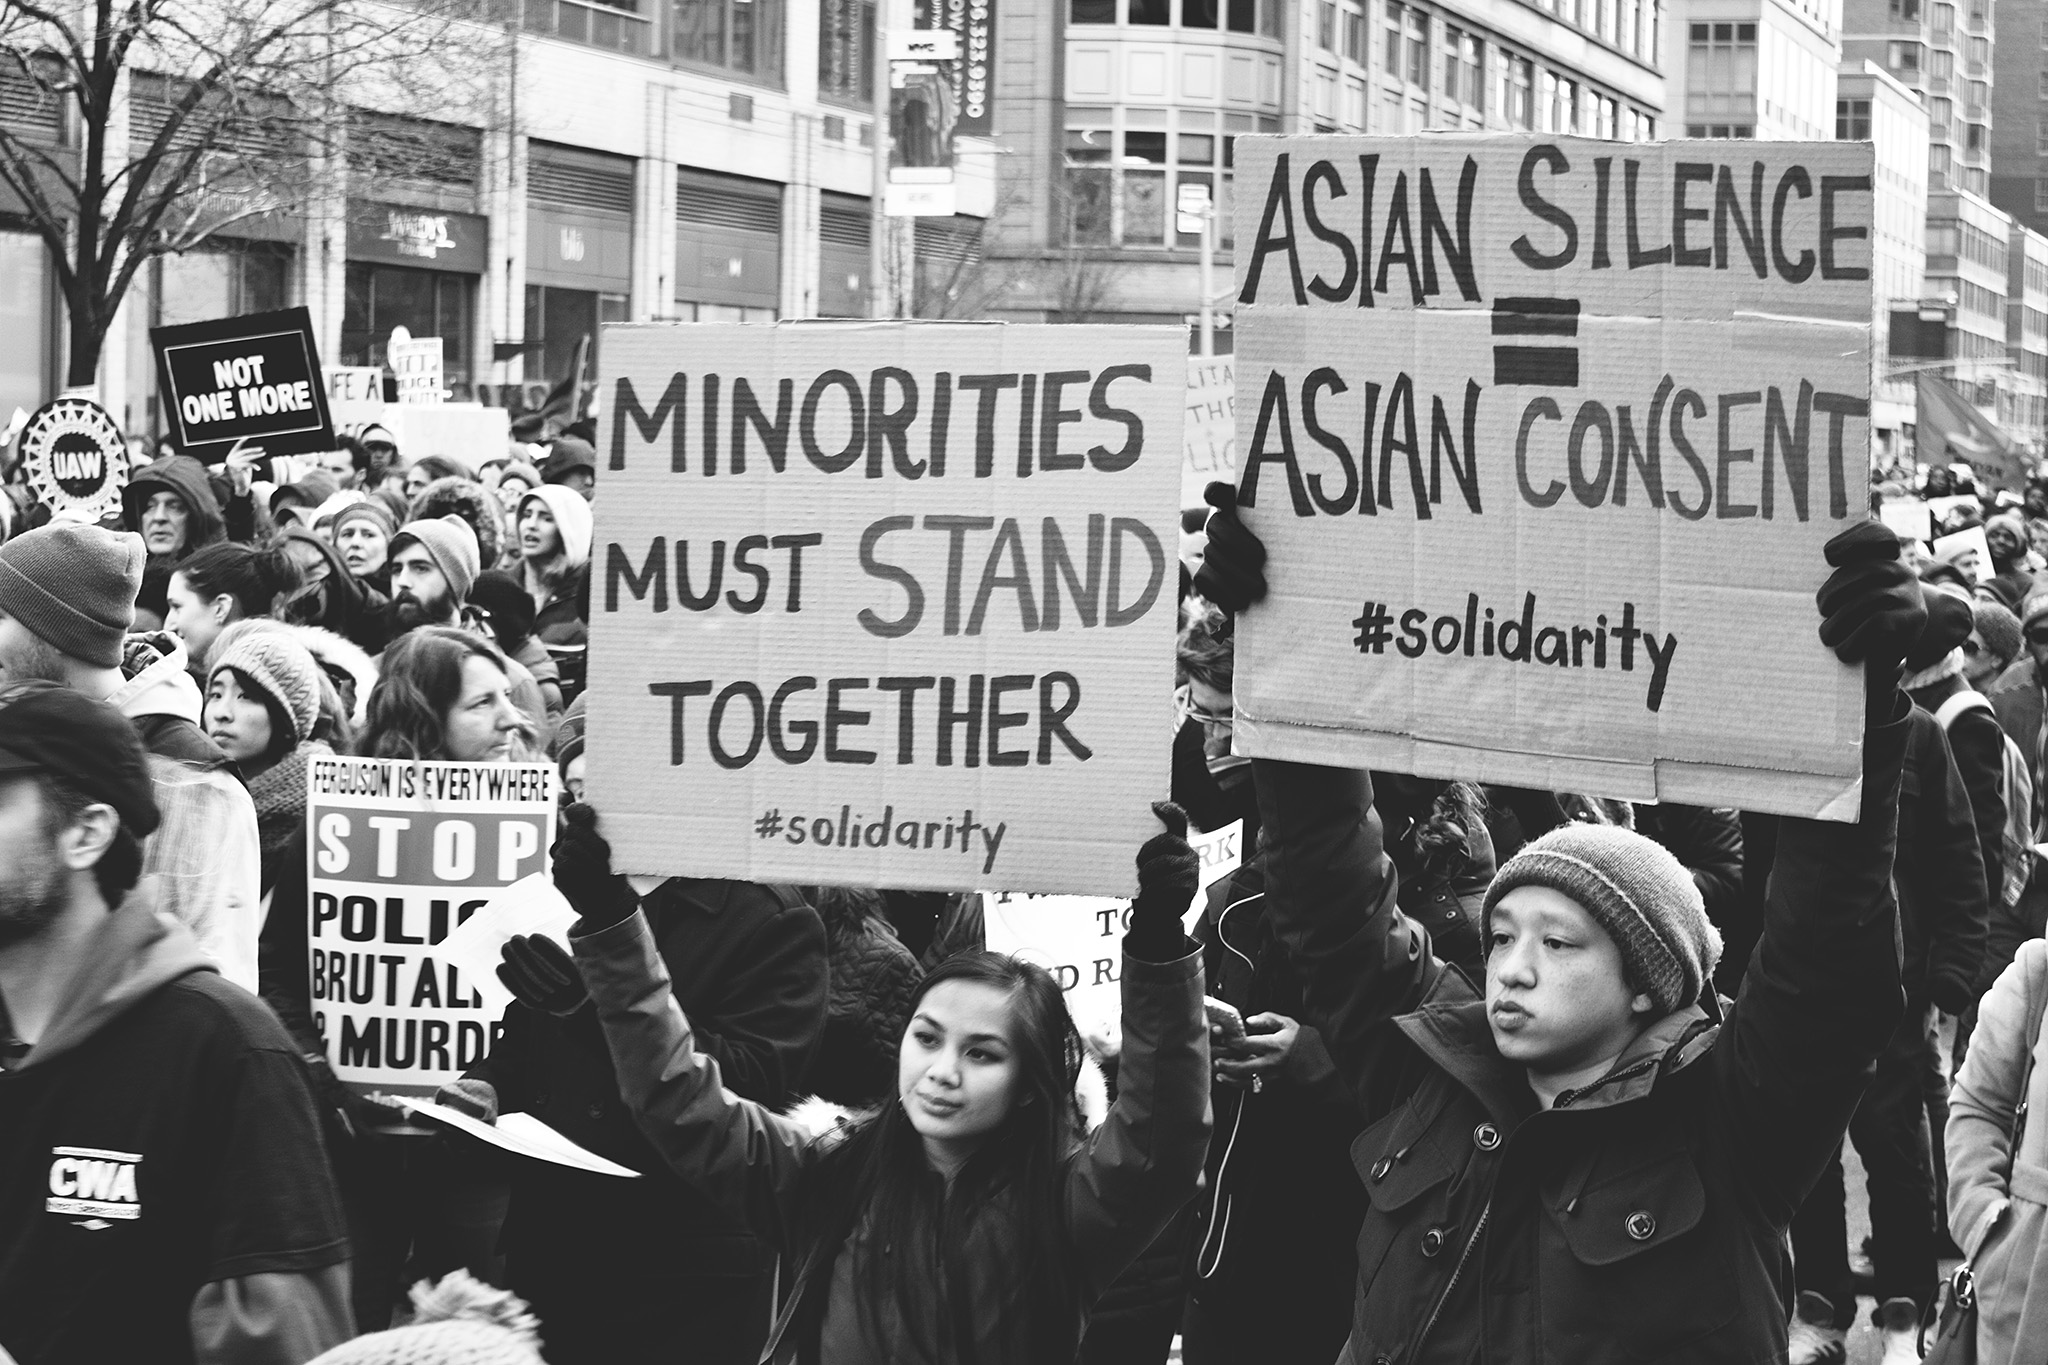 """Asian American racial justice protestors in New York City in 2014, focussing on two people in the foreground holding up cardboard signs that read """"minorities must stand together #solidarity"""" and """"Asian silence = Asian consent #solidarity"""", challenging the model minority myth"""